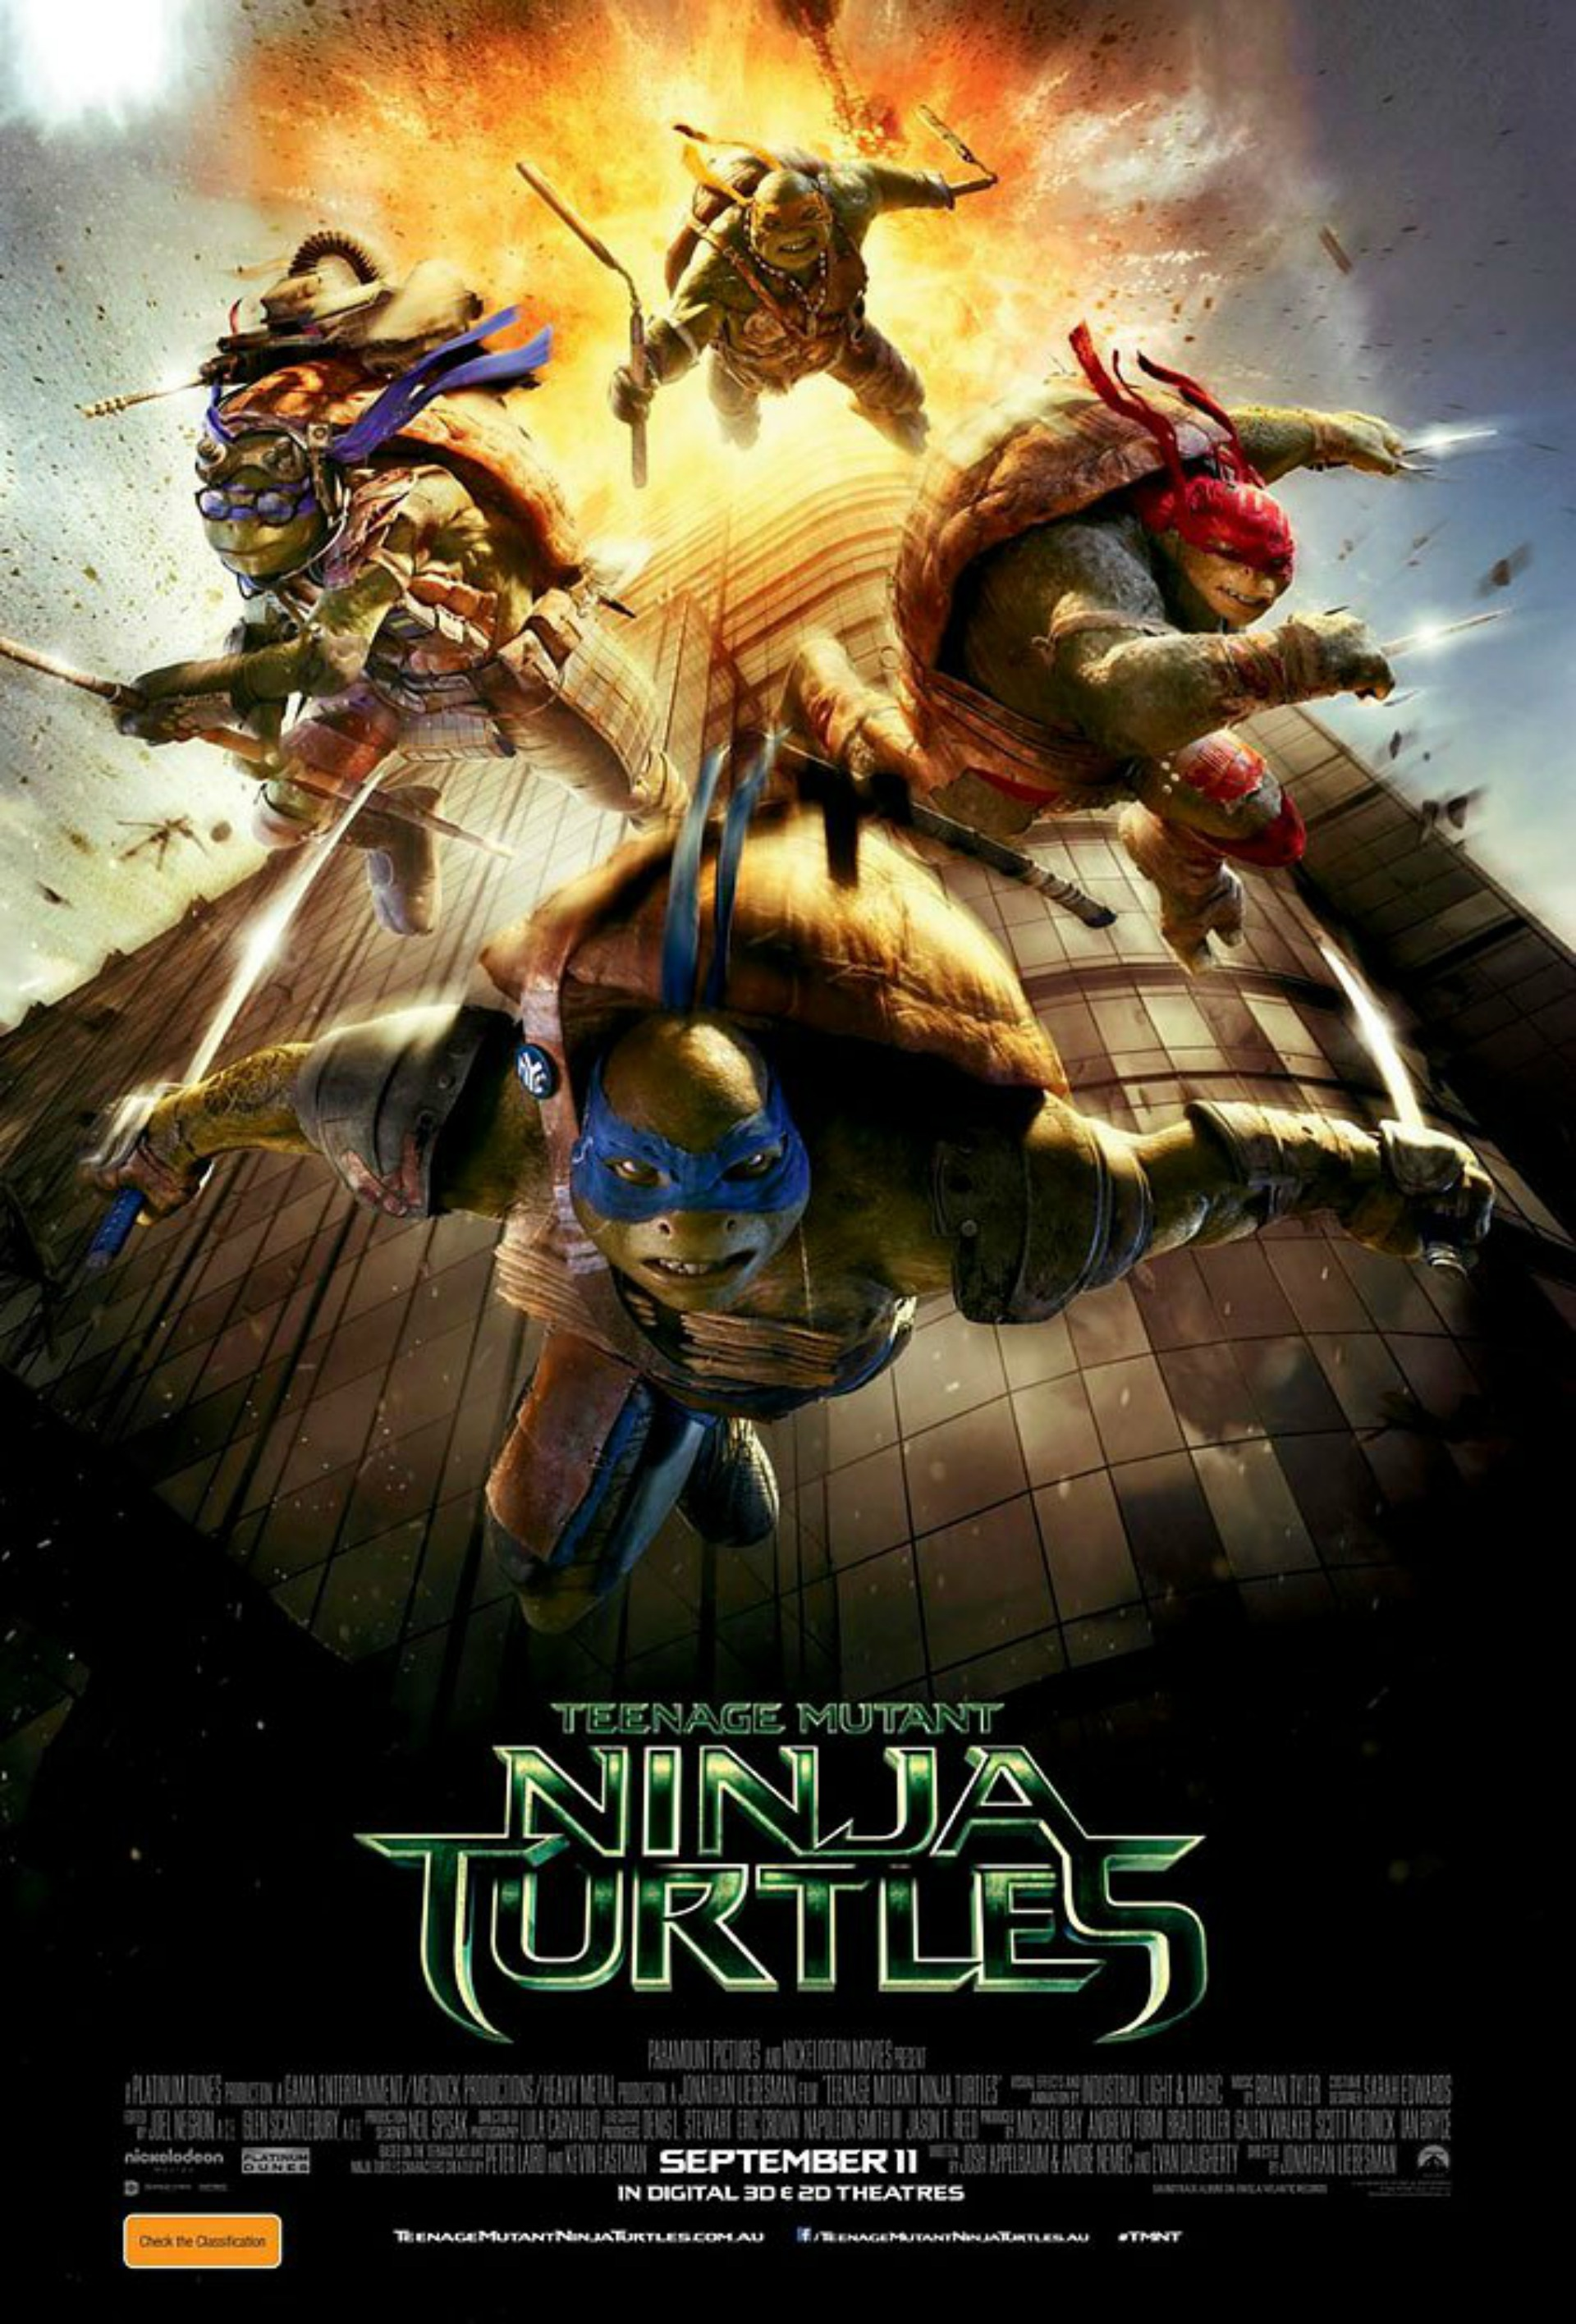 Teenage Mutant Ninja Turtles Australian poster